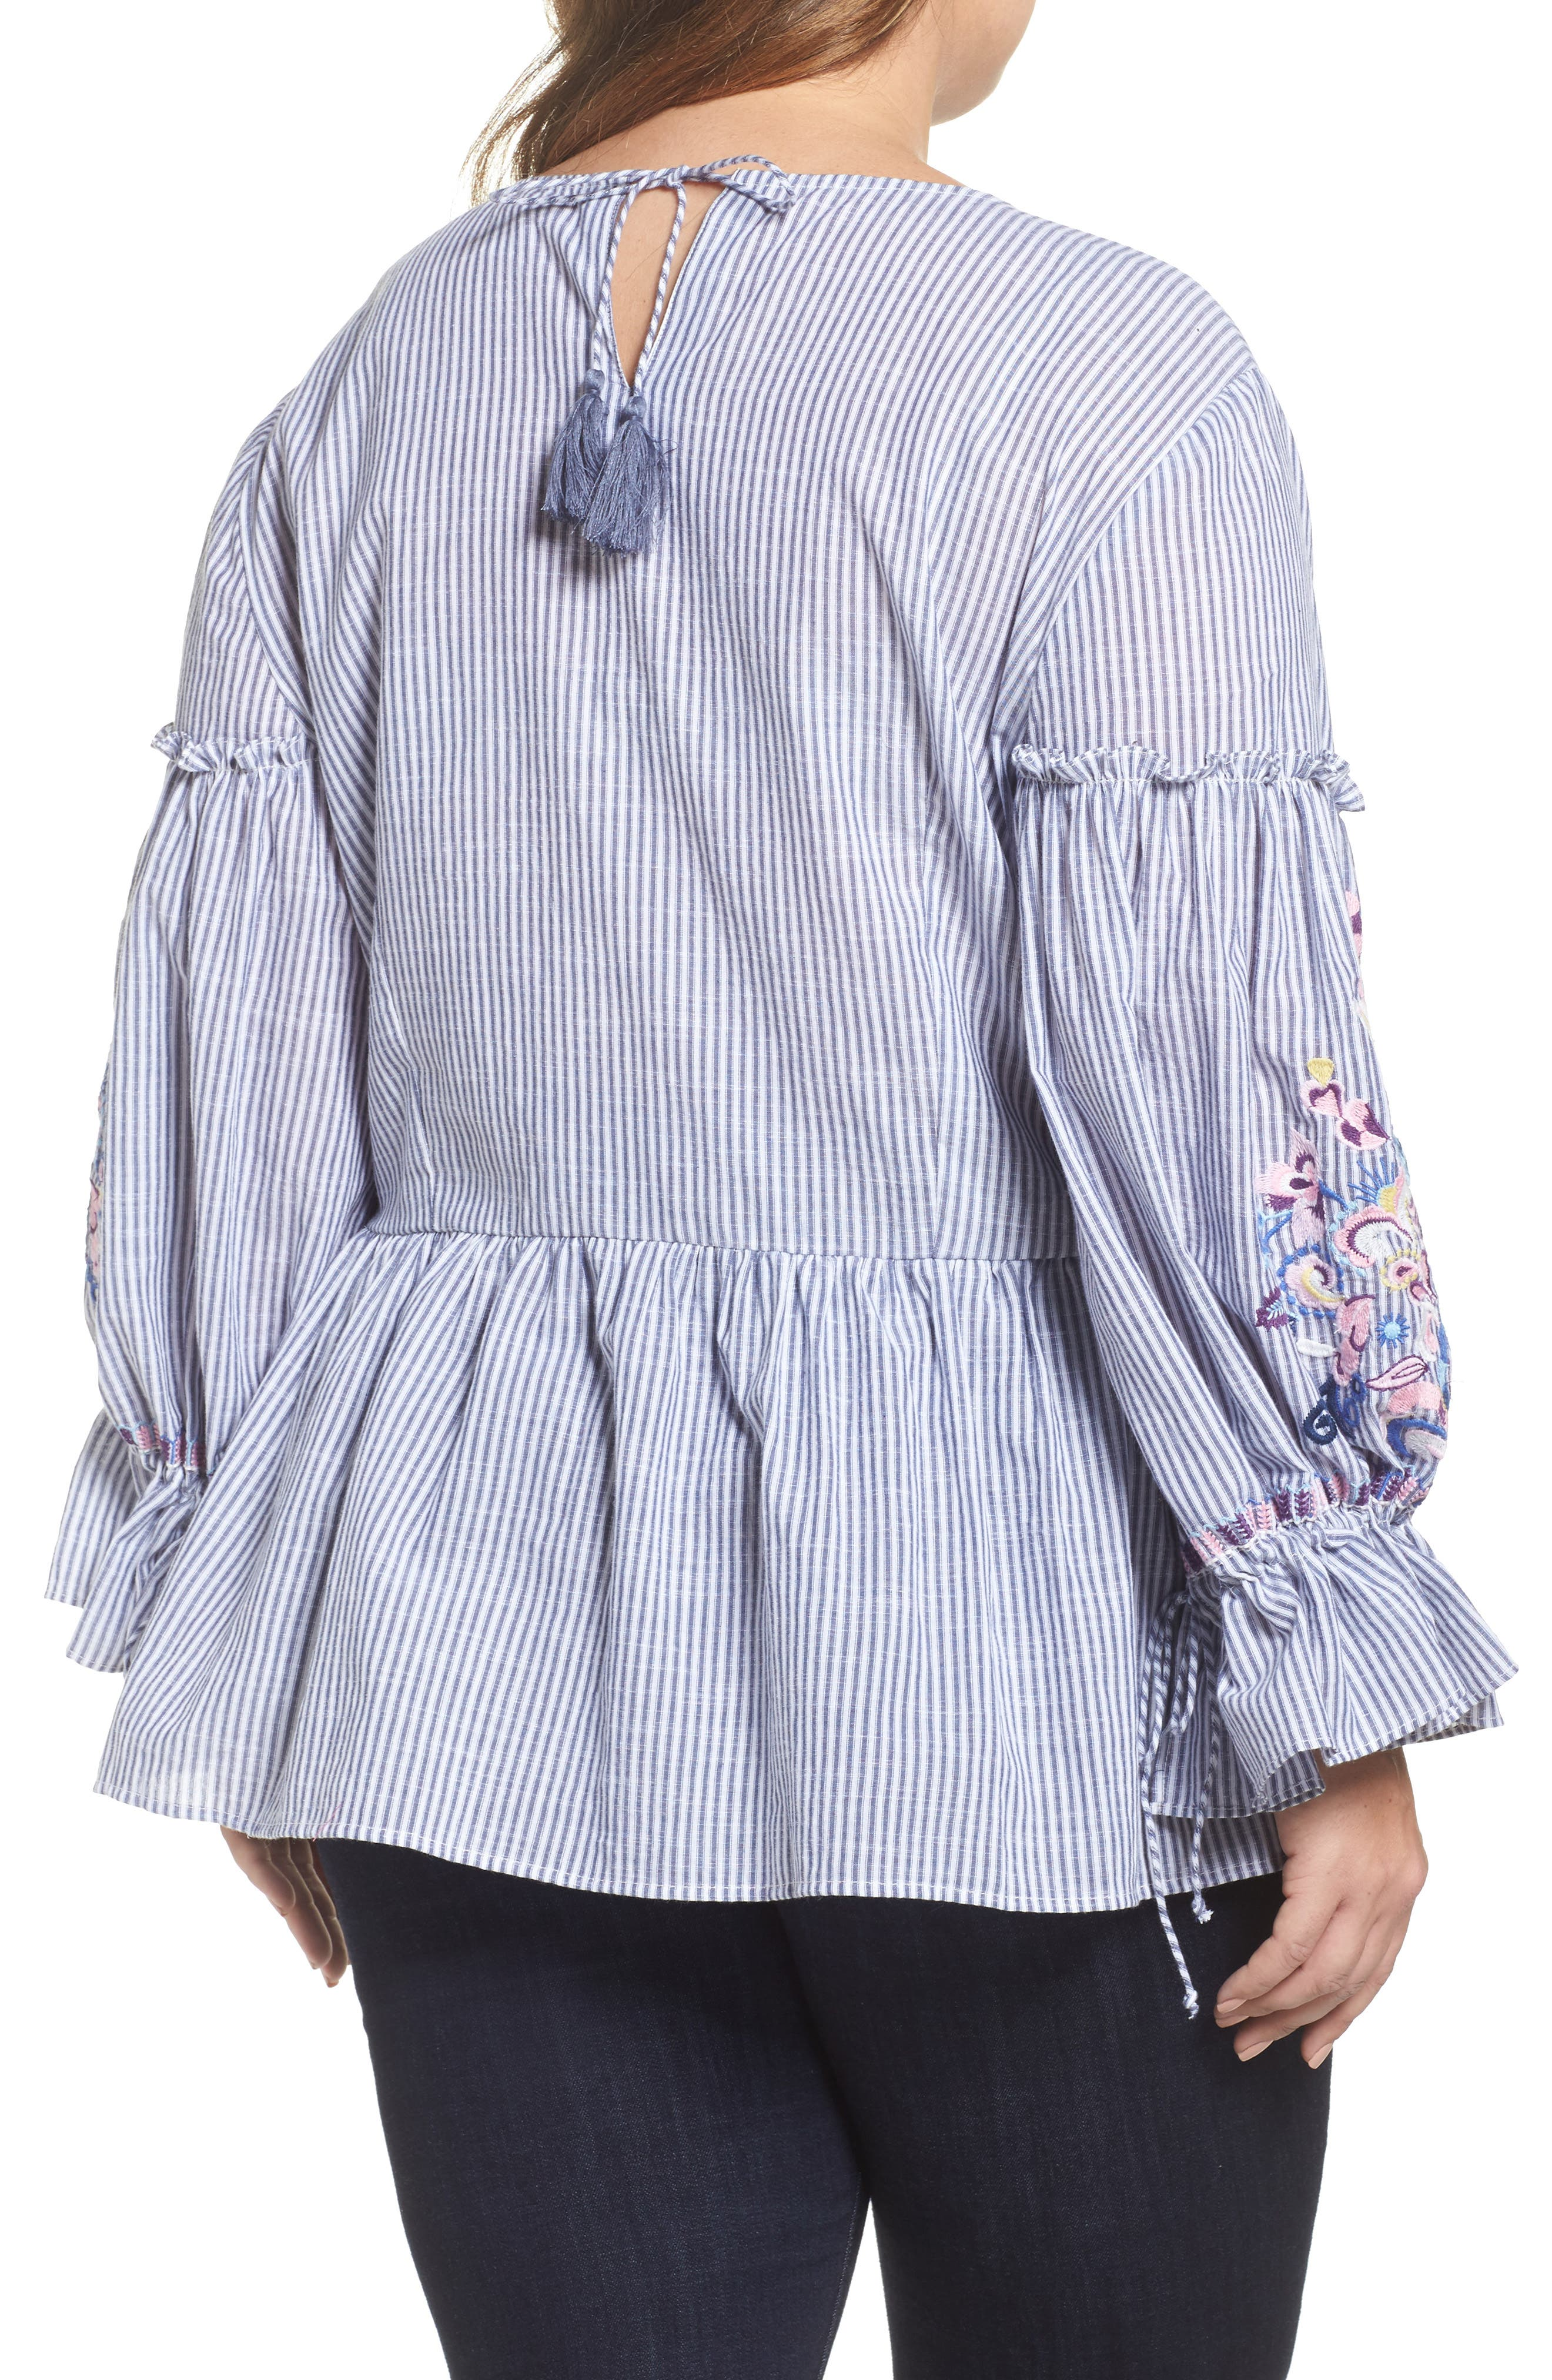 Embroidered Blouse,                             Alternate thumbnail 2, color,                             420